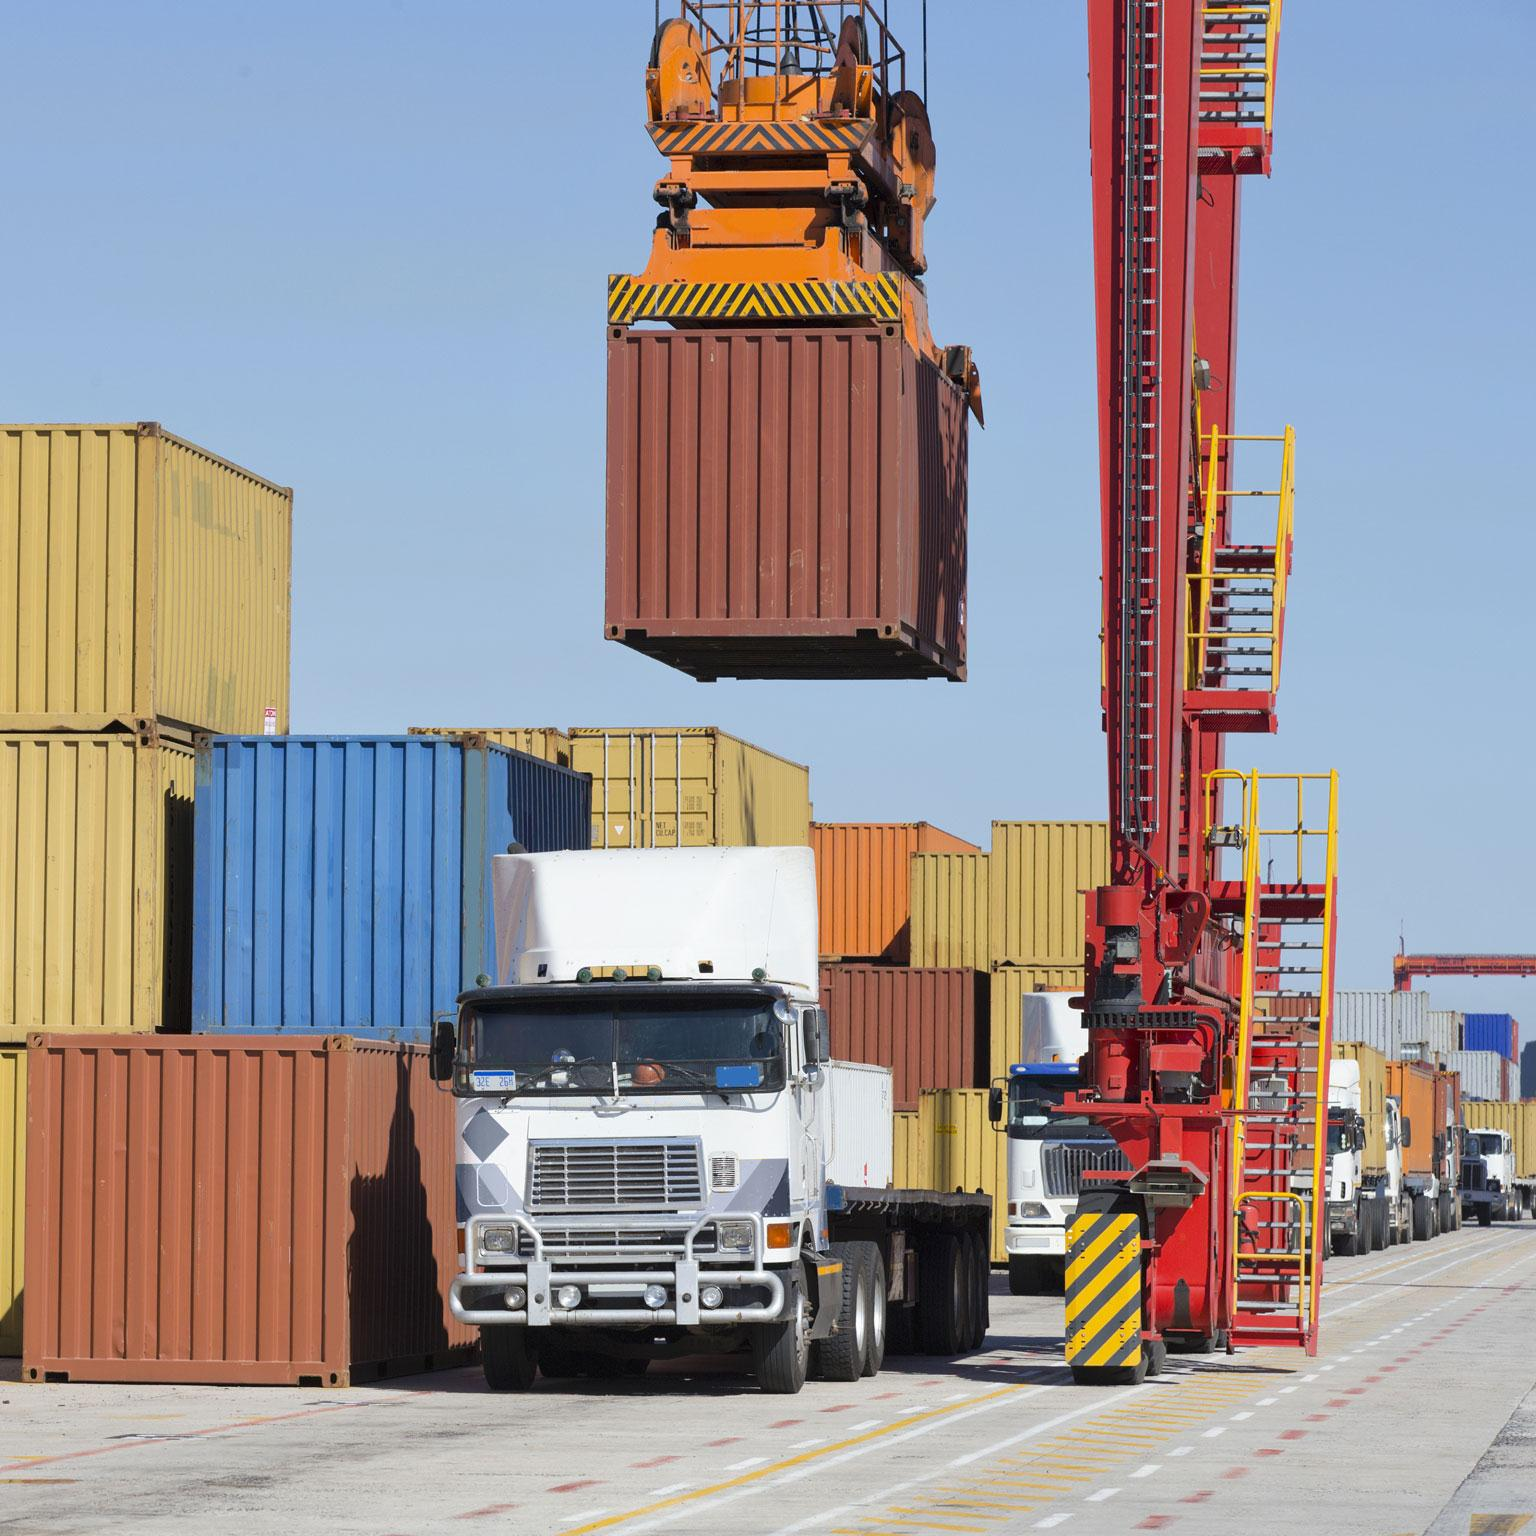 Landside operations: The next frontier for container-shipping